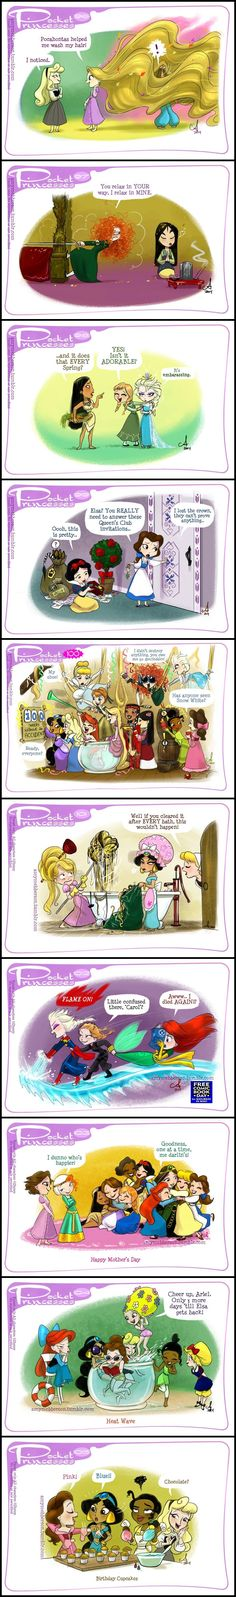 My Junk Drawer Pocket Princesses (Part by Amy Mebberson Pocket Princesses, Pocket Princess Comics, Disney Pixar, Disney And Dreamworks, Disney Magic, Walt Disney, Disney Princes, Funny Disney Memes, Disney Quotes